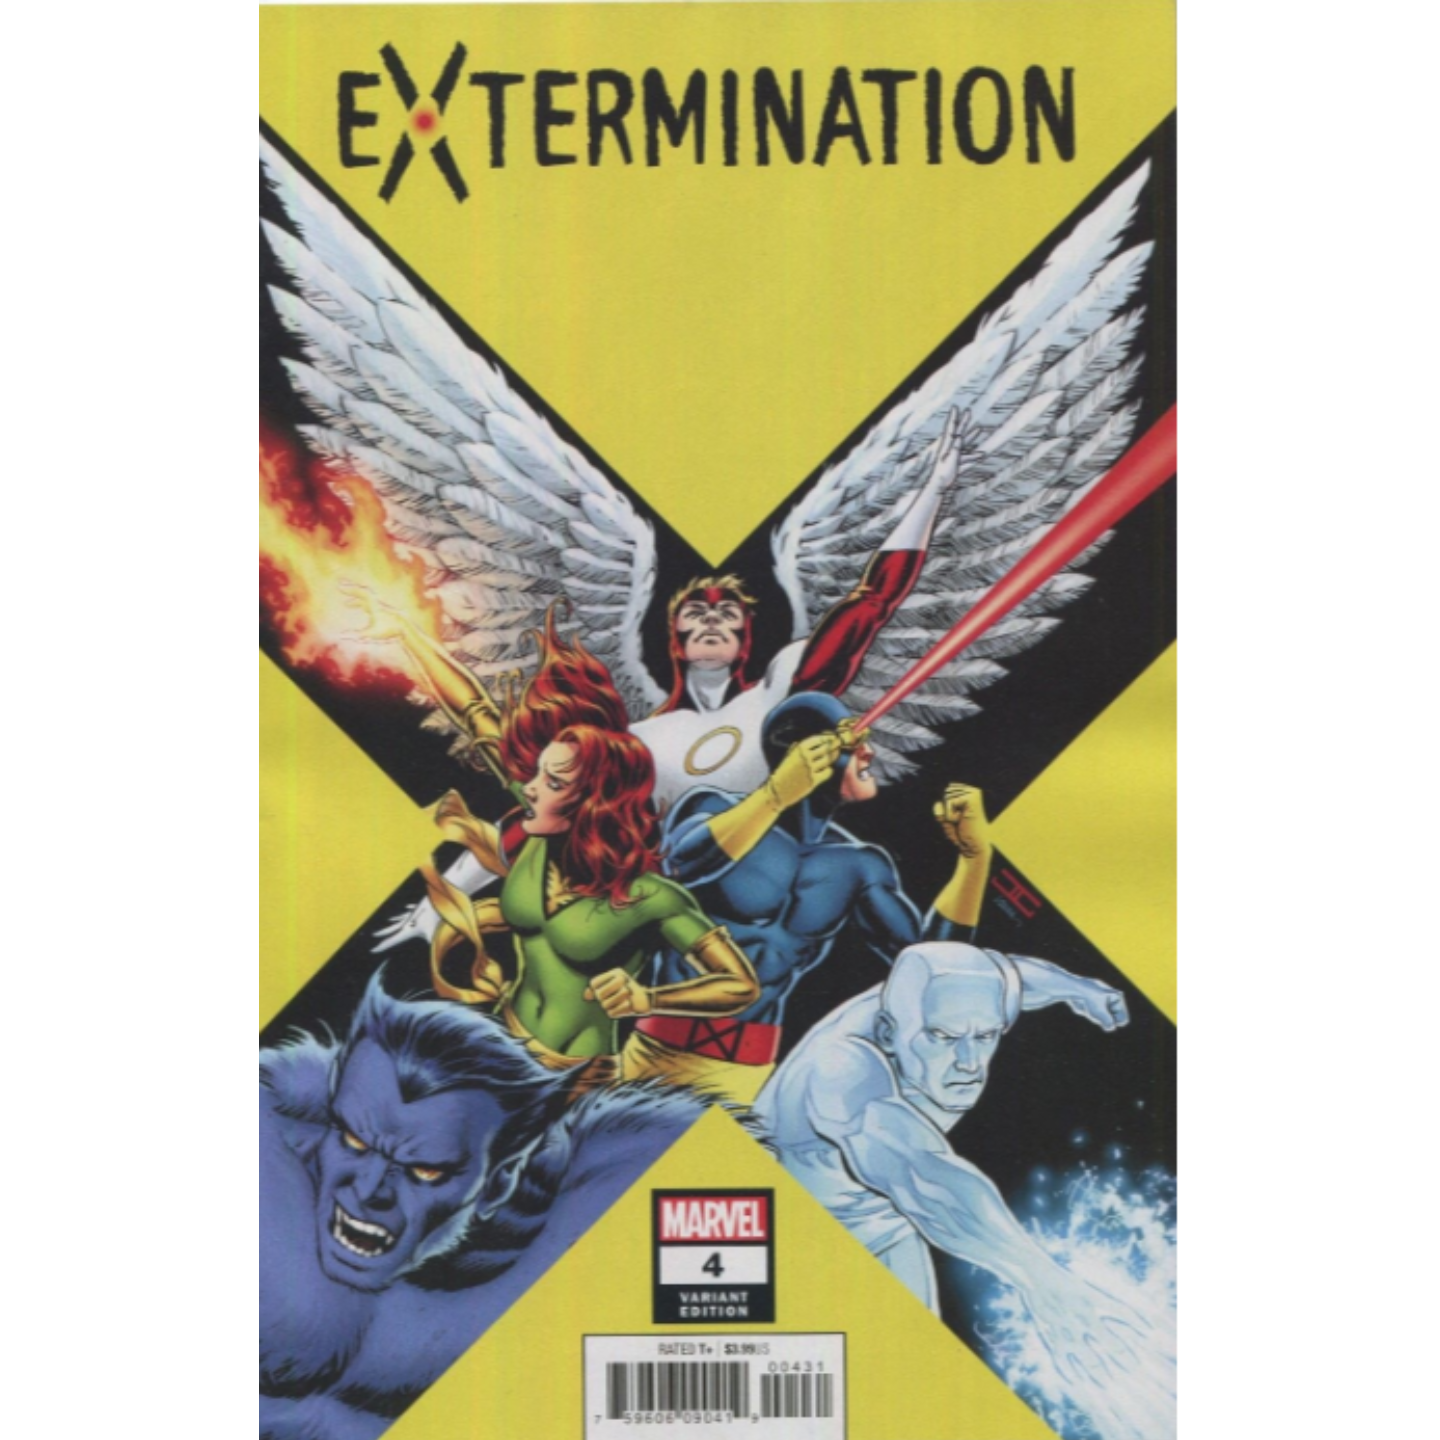 EXTERMINATION #4 CASSADAY VARIANT